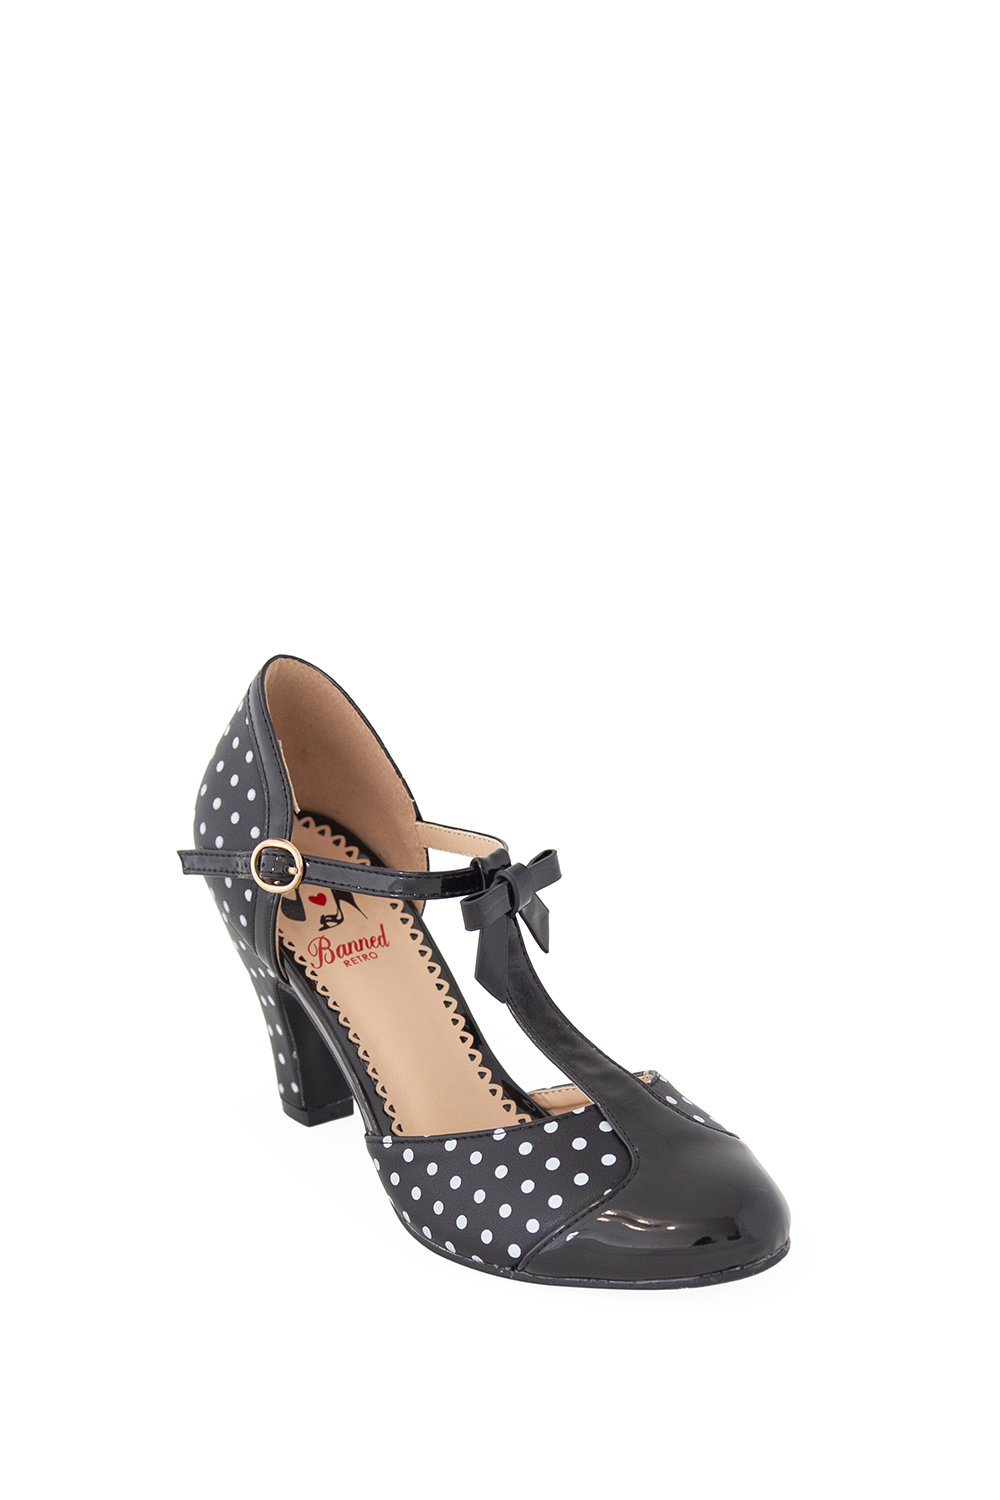 Banned Retro 50s Black Kelly Lee T Strap Shoes